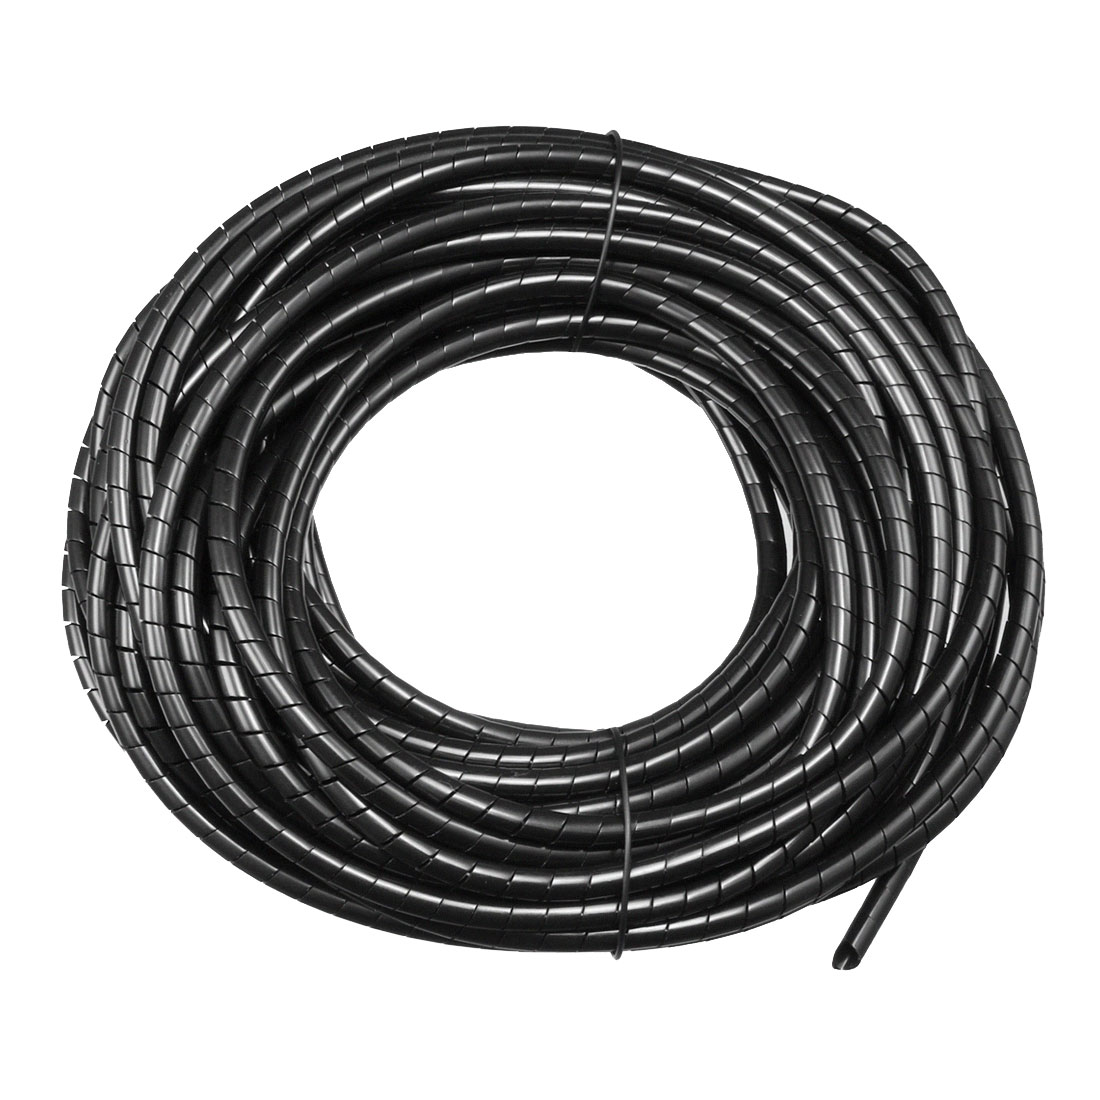 6mm Flexible Spiral Tube Cable Wire Wrap Computer Manage Cord Black 14-15Meter